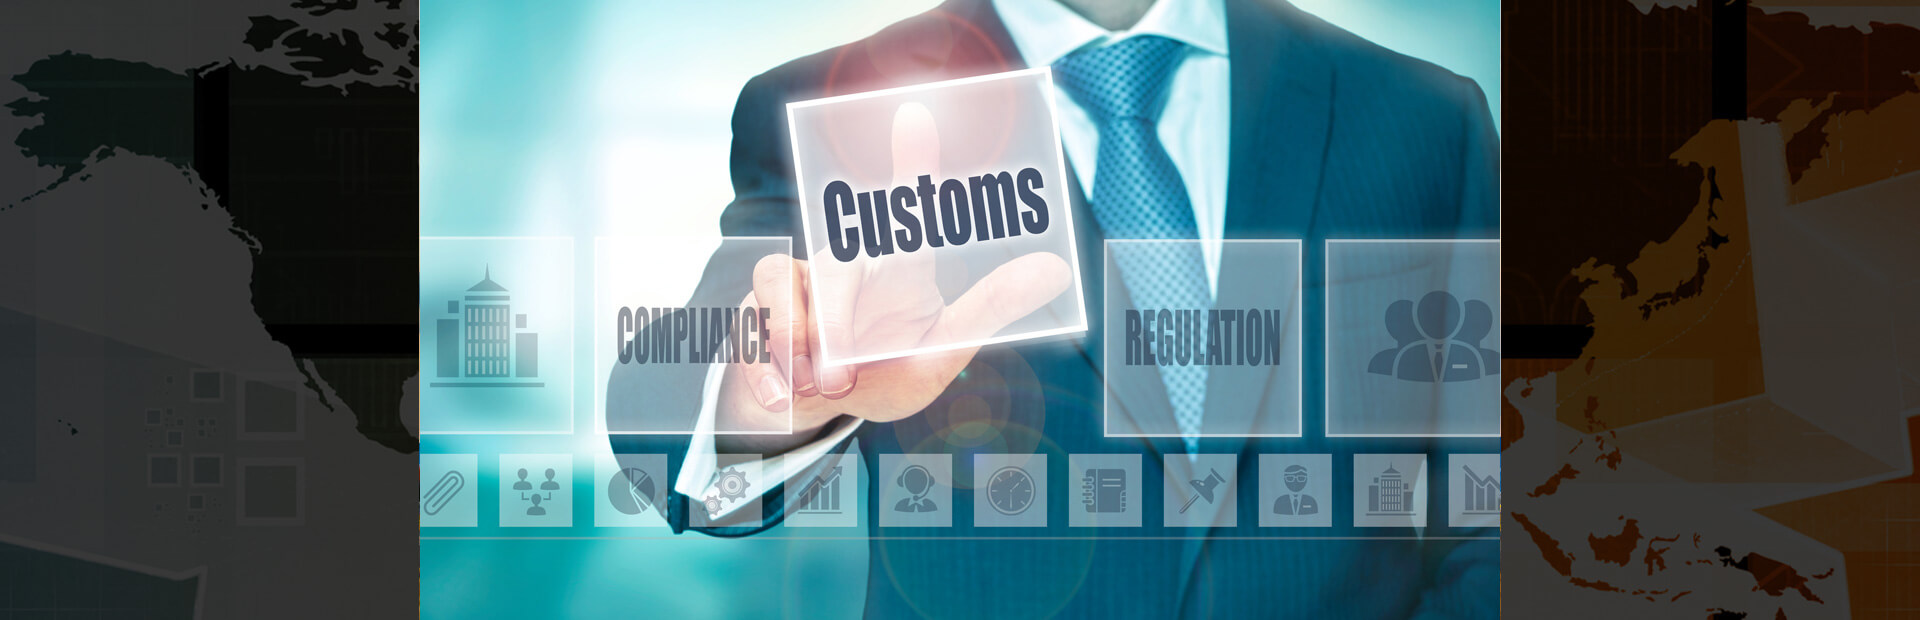 CWG Customs Broker - laws and compliance